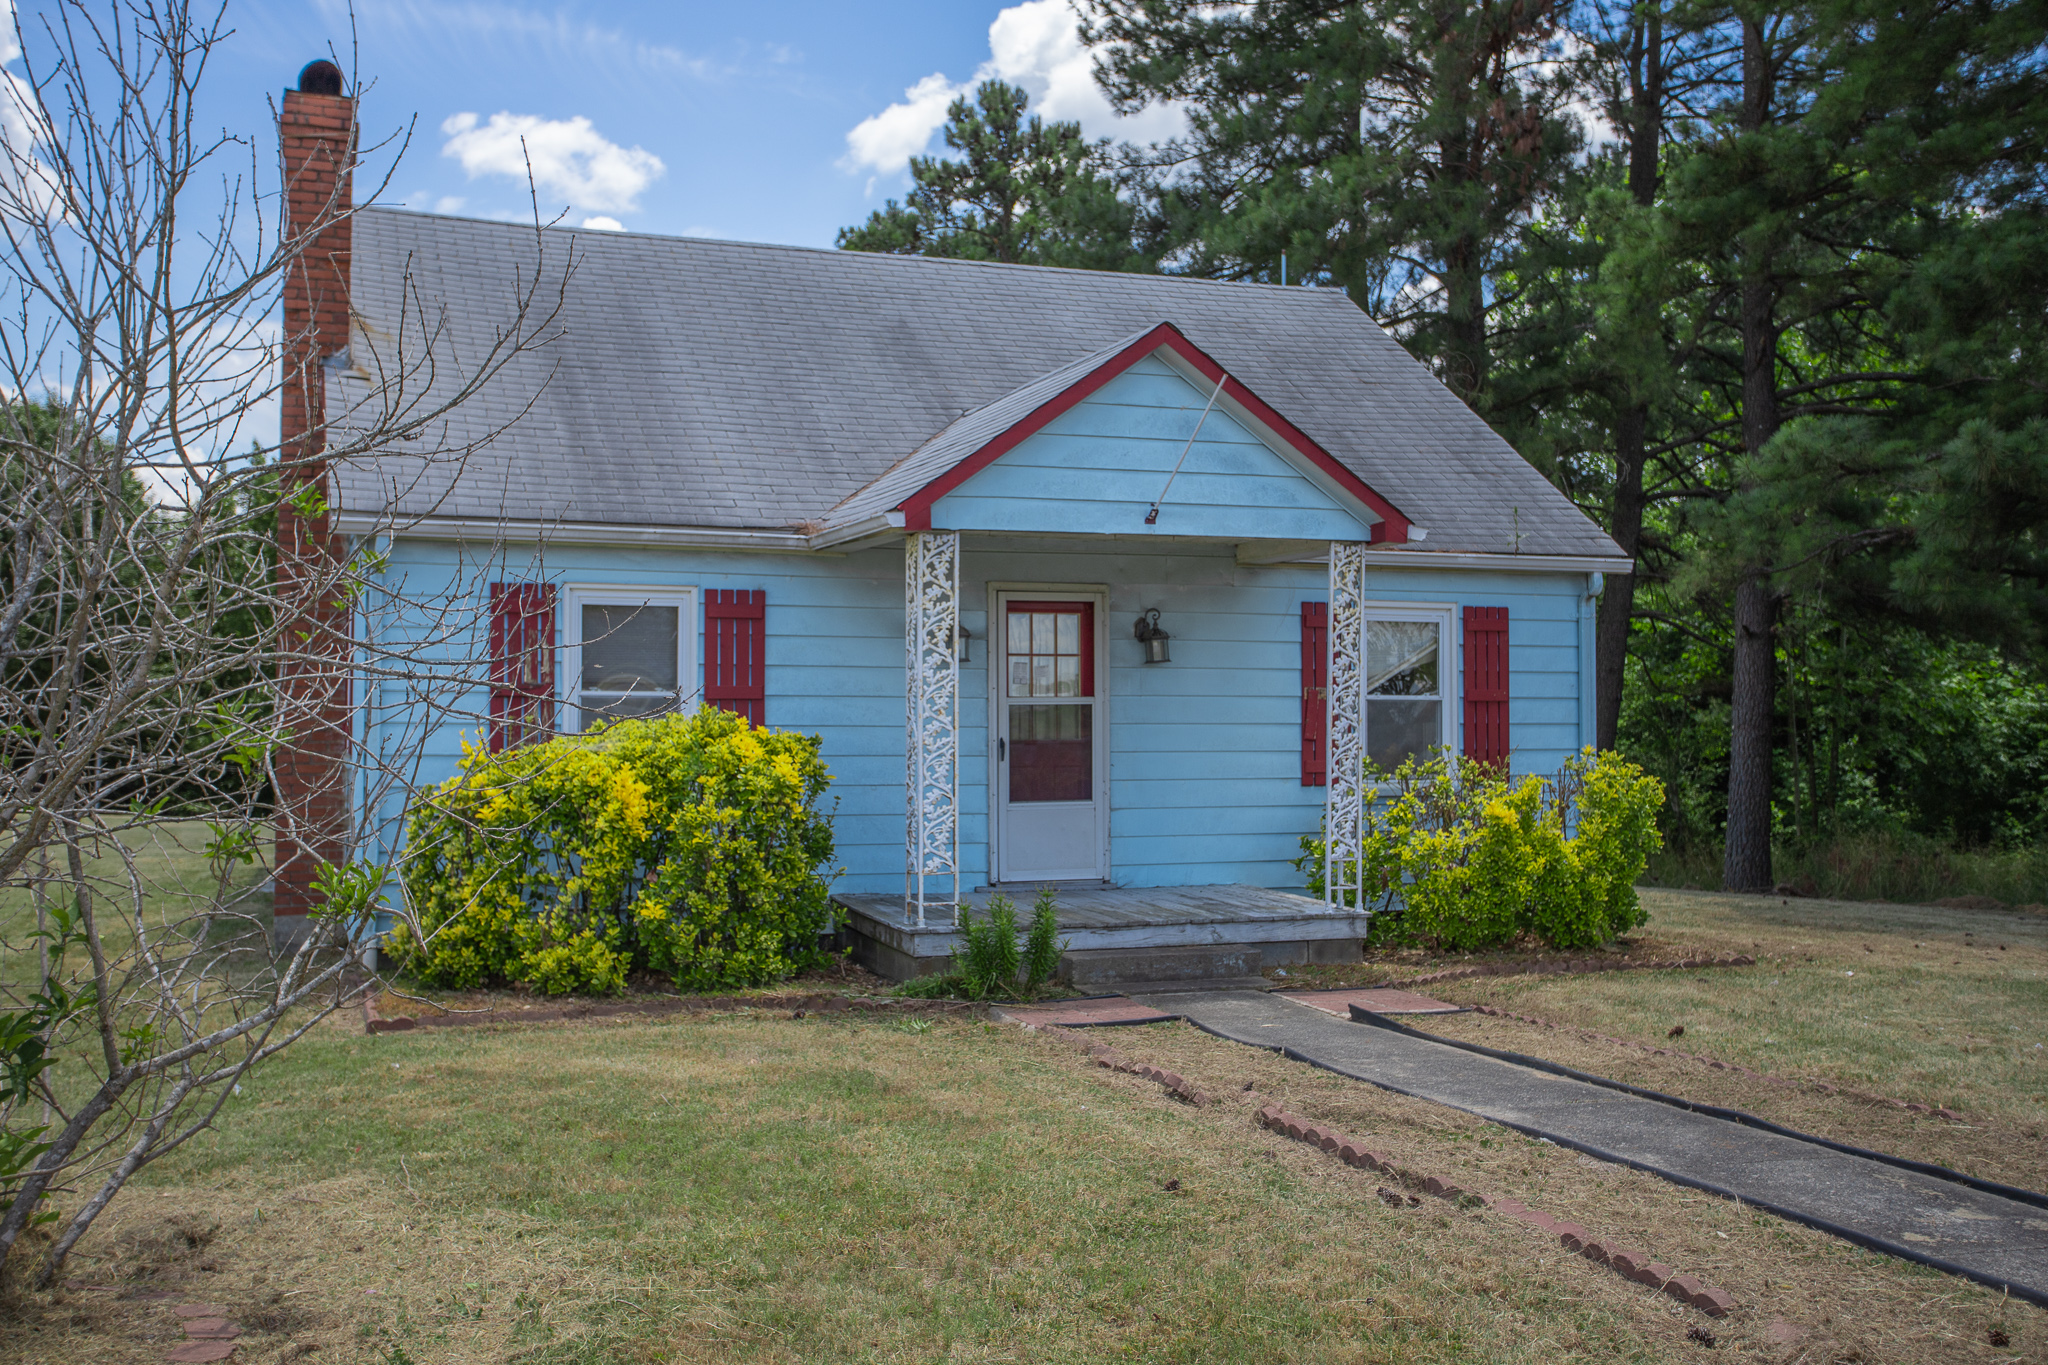 Adorable Home with Large Shop, 8118 James D Hagood Hwy in Scottsburg